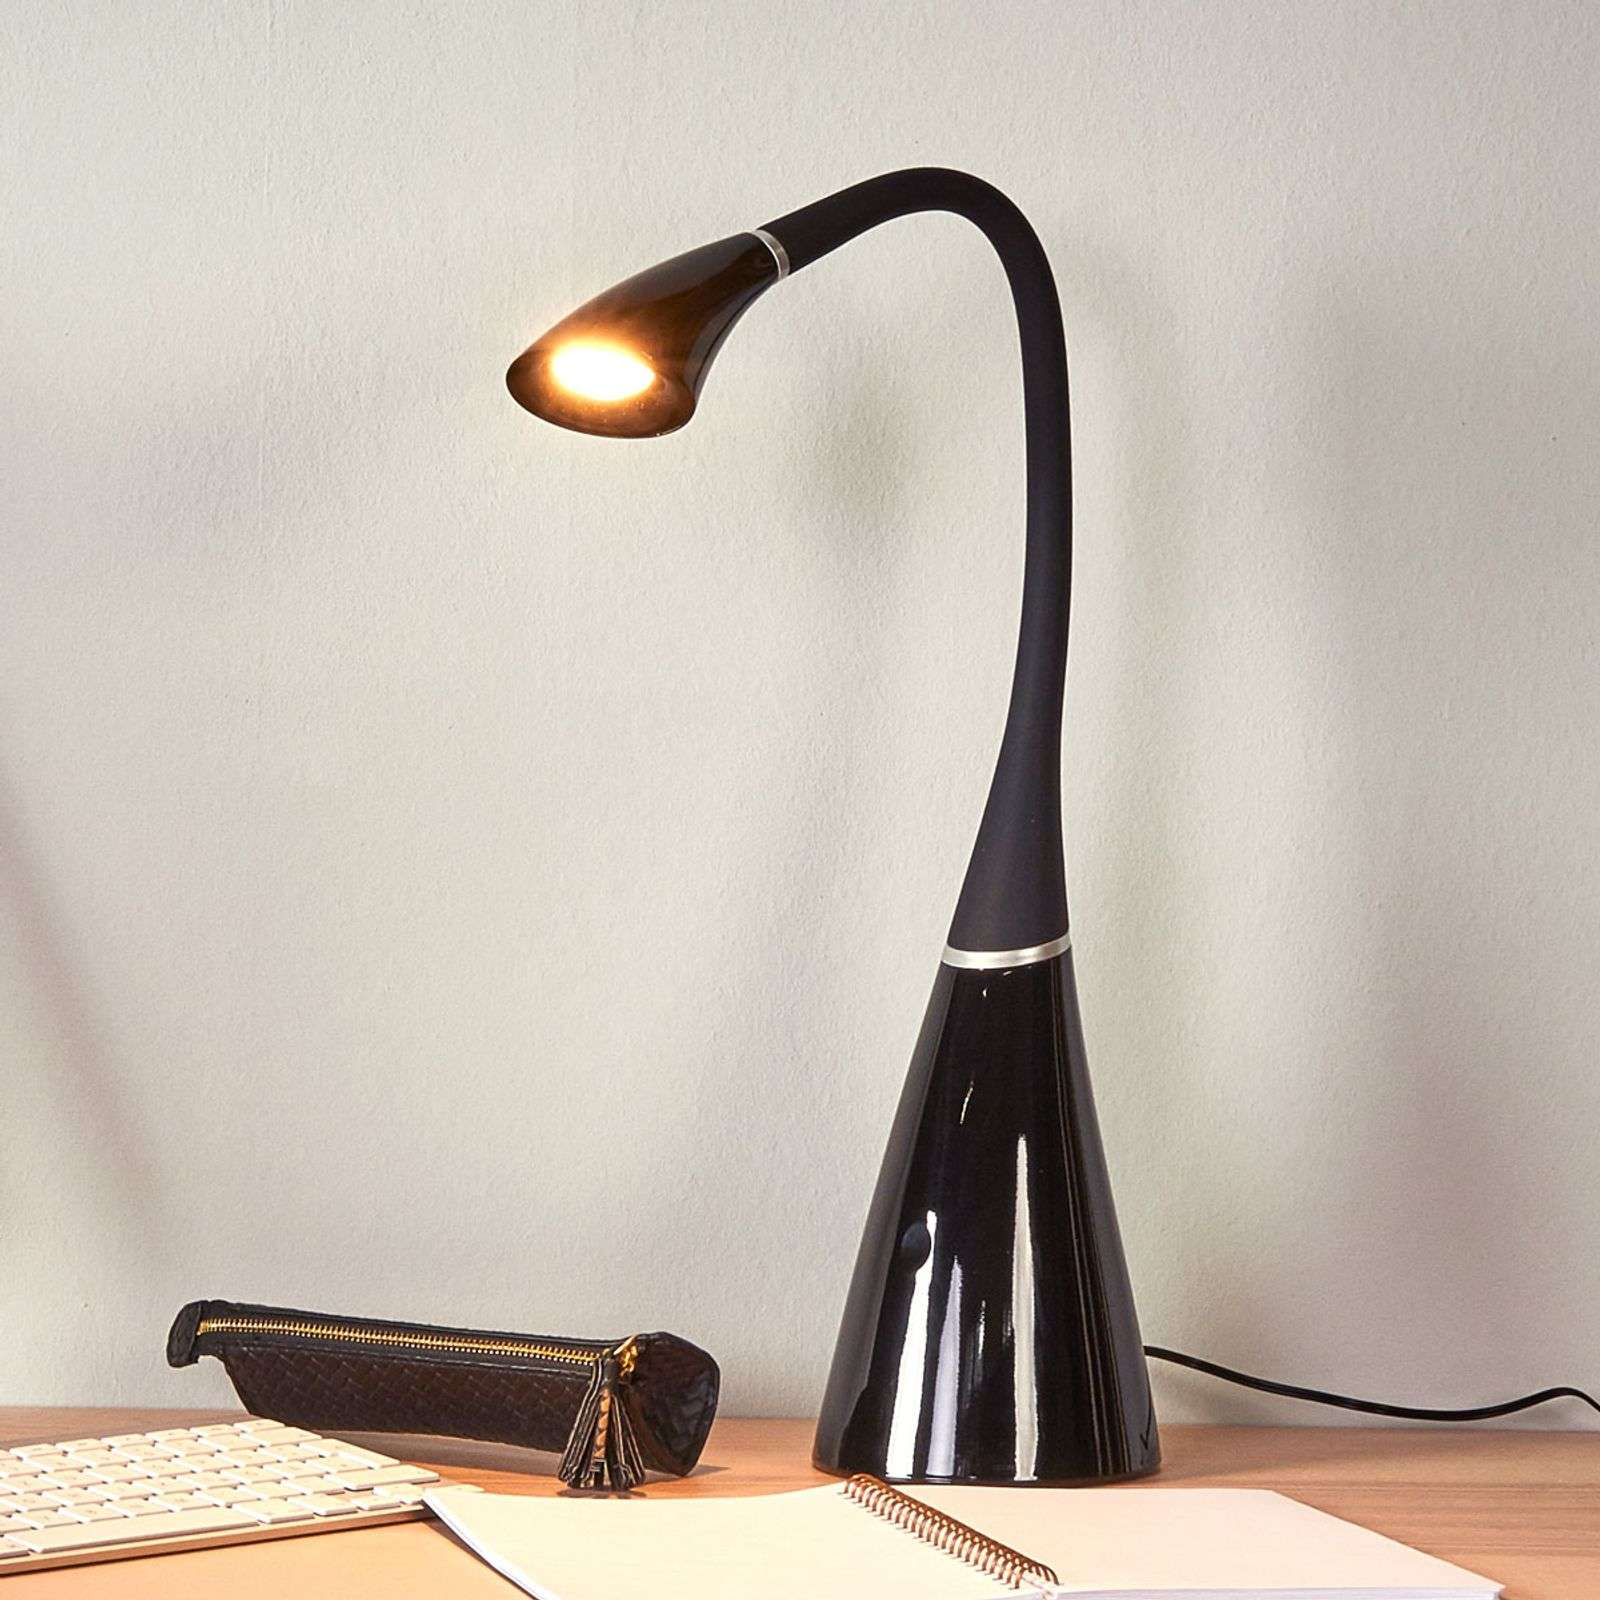 Lampe à poser LED variable Noelia pour le bureau